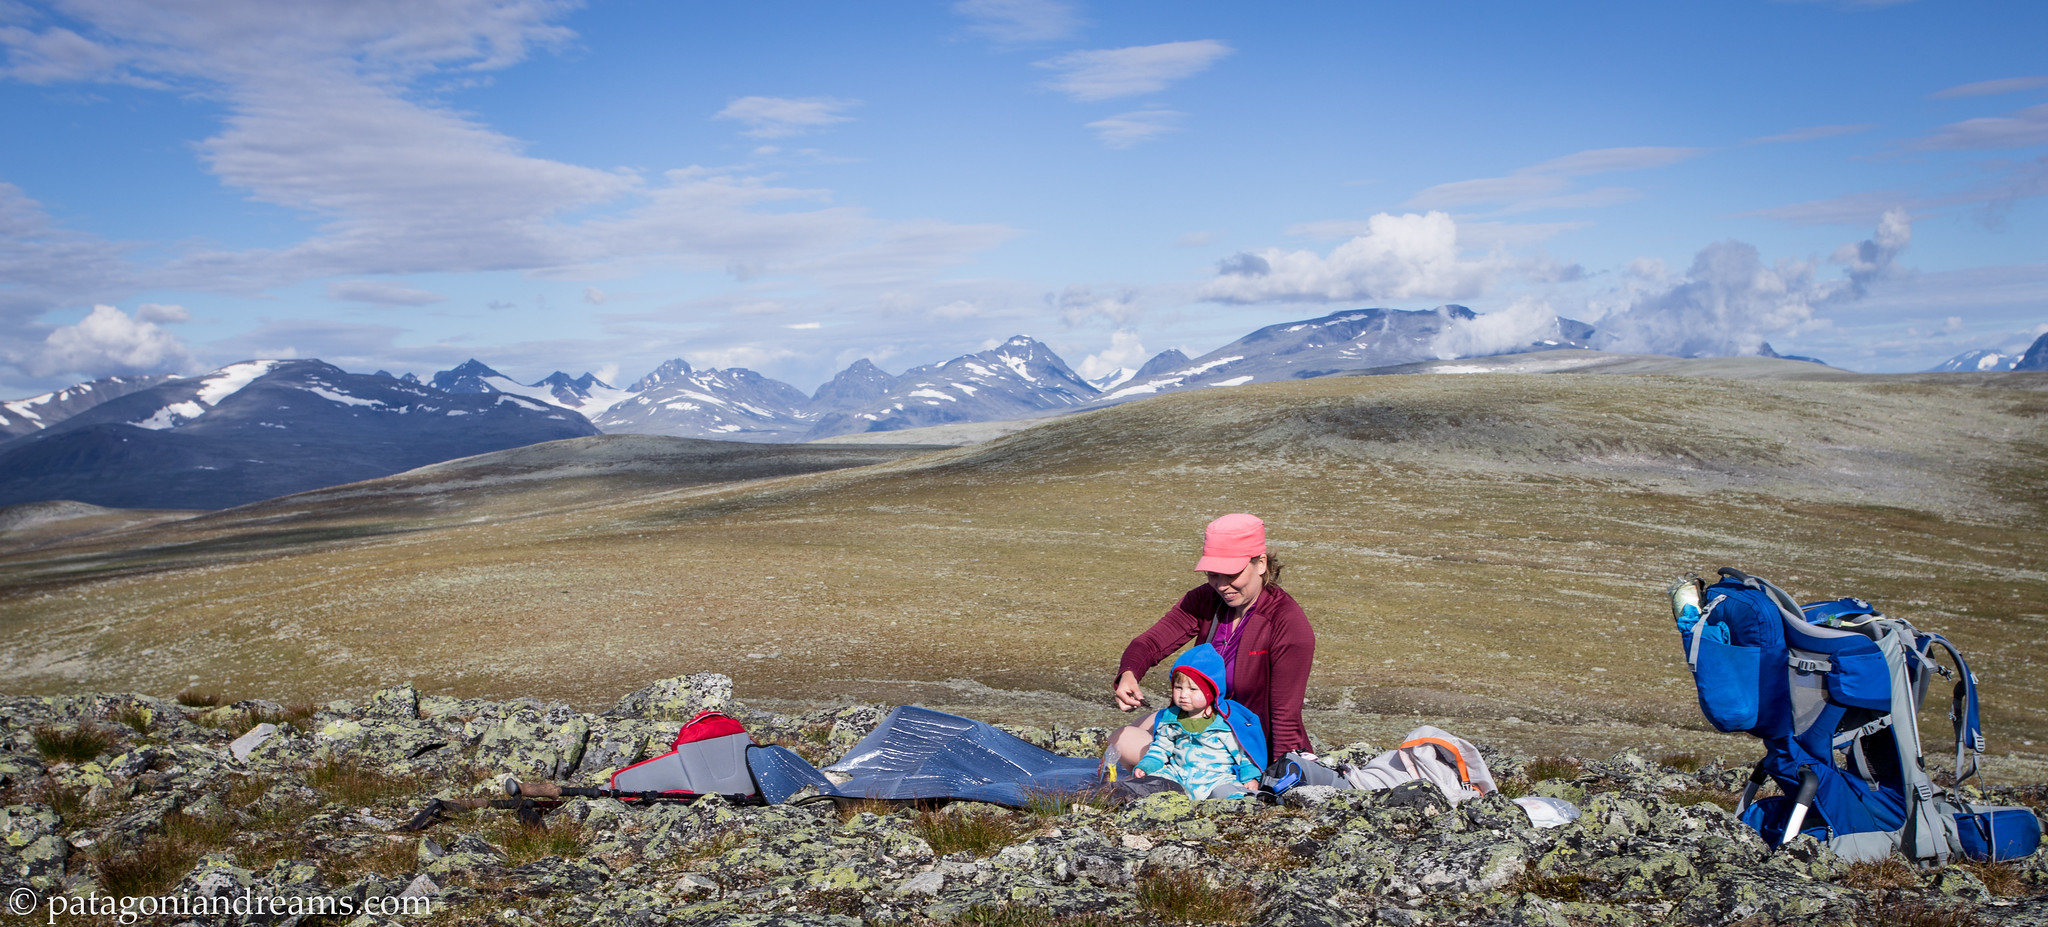 It's not the beach, but hey, it's sunny and the view is nice! Sarek NP. Laponia. Swedish Lapland.